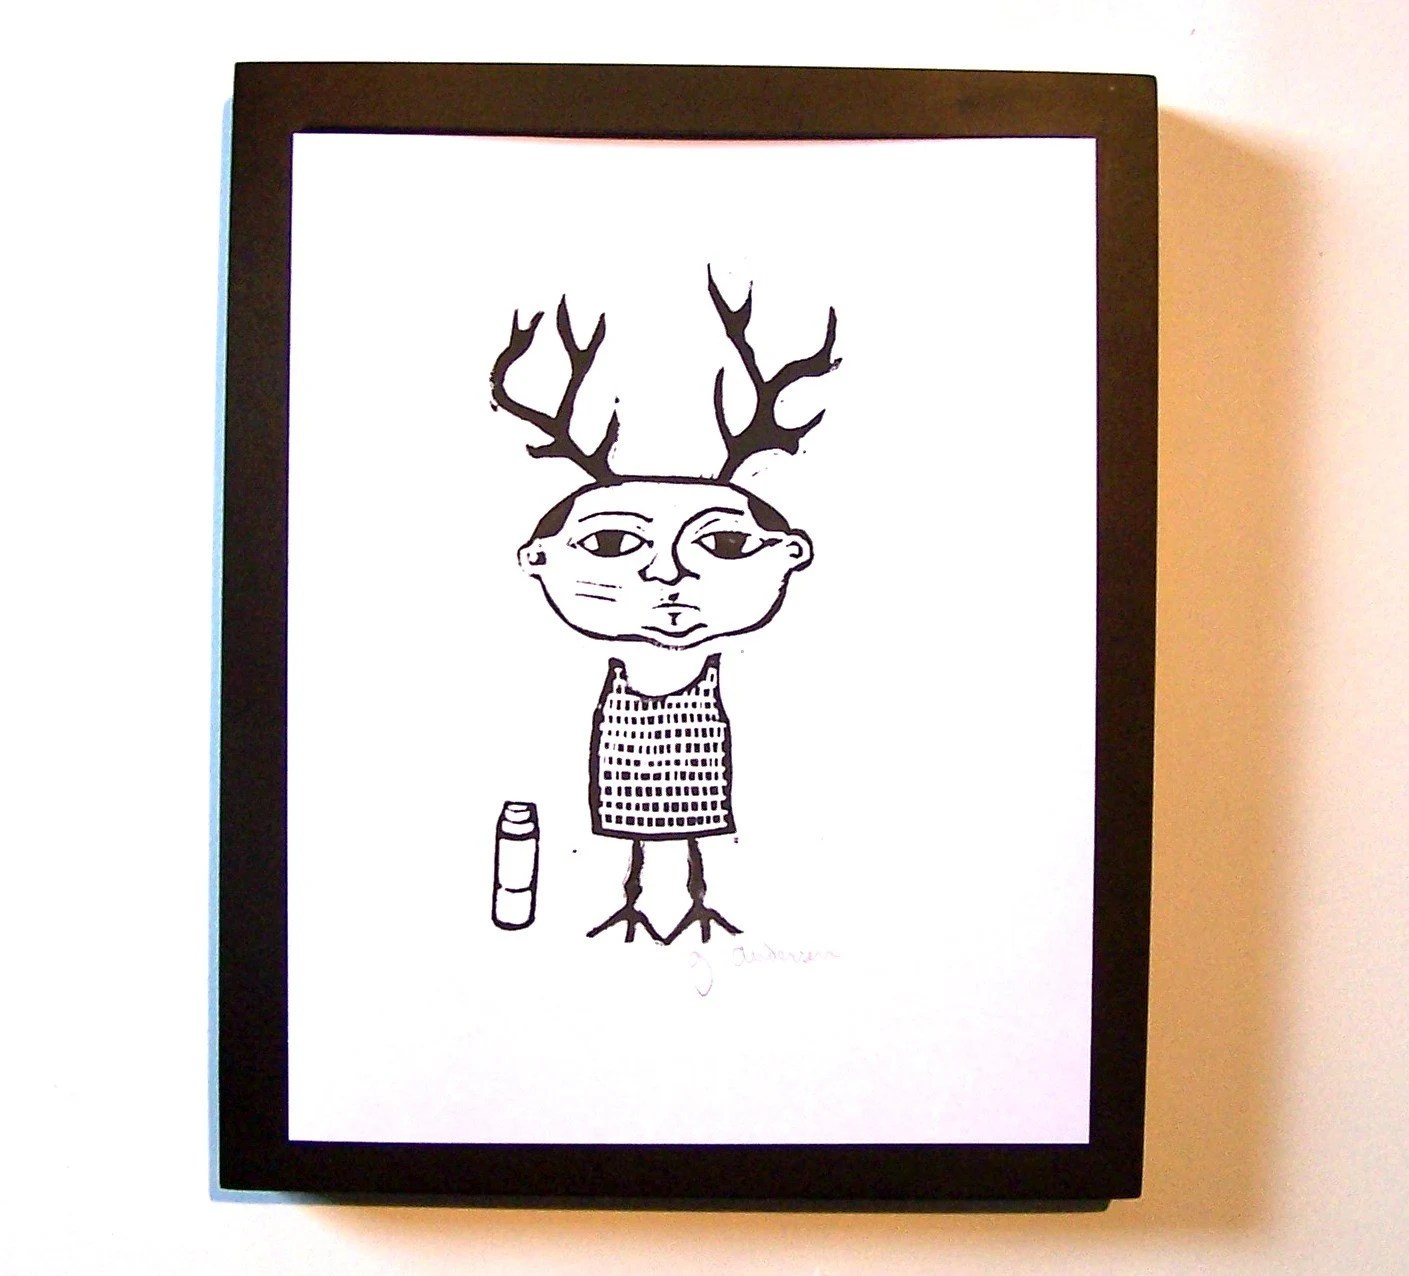 PRINT - Antler bird man w/ thermos